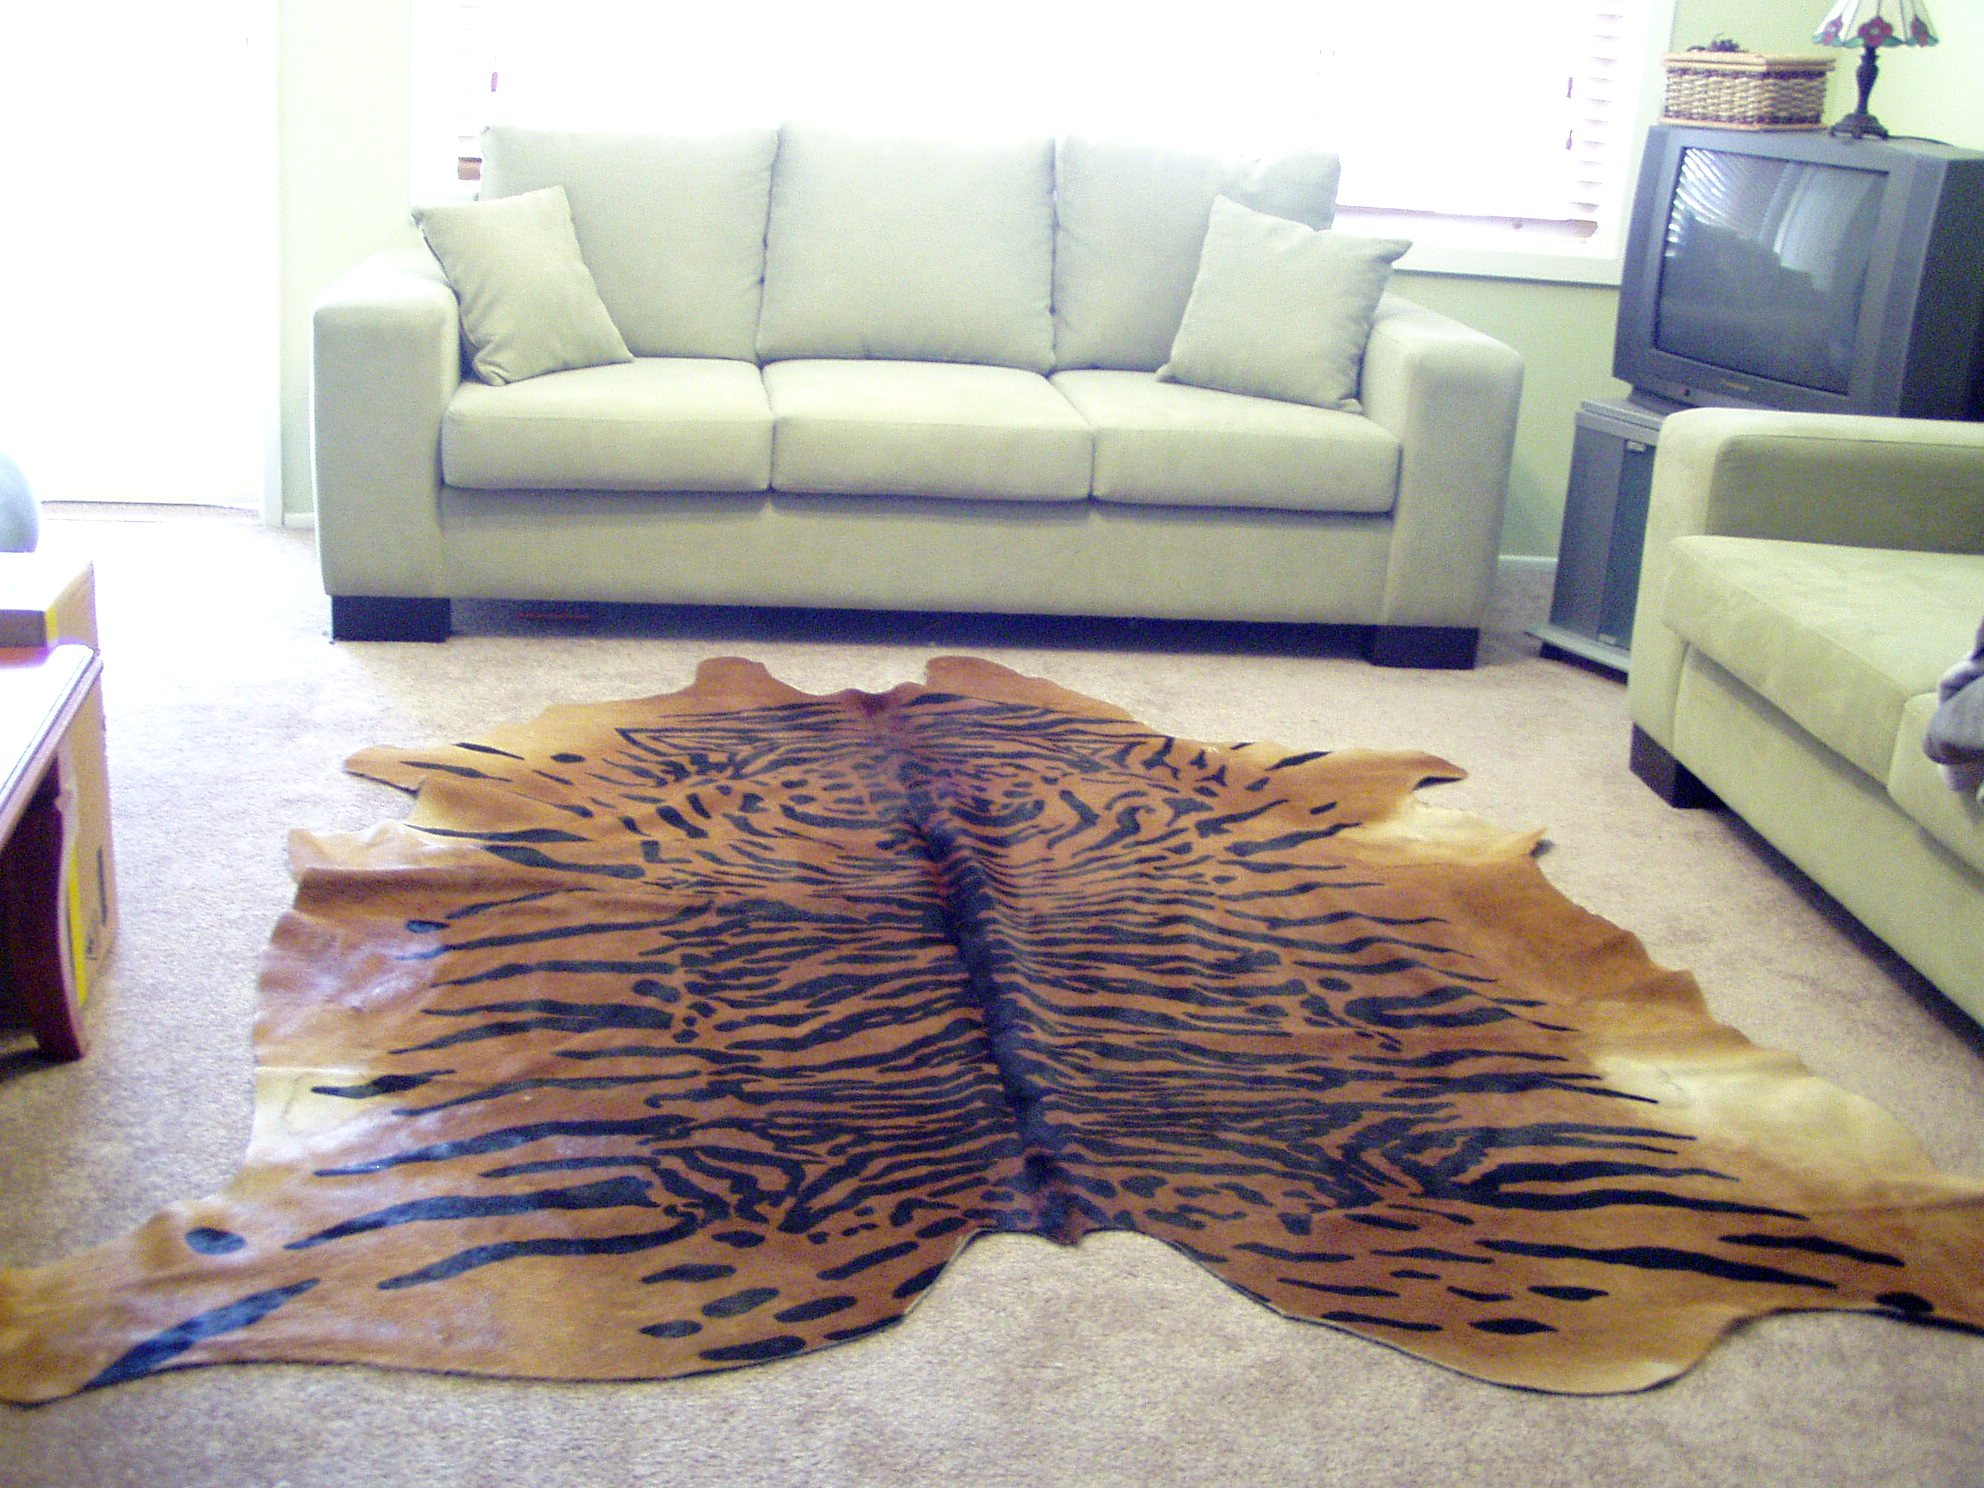 Luxury Cow Hide Rugs And Gifts Ugg Boots Sheepskins And